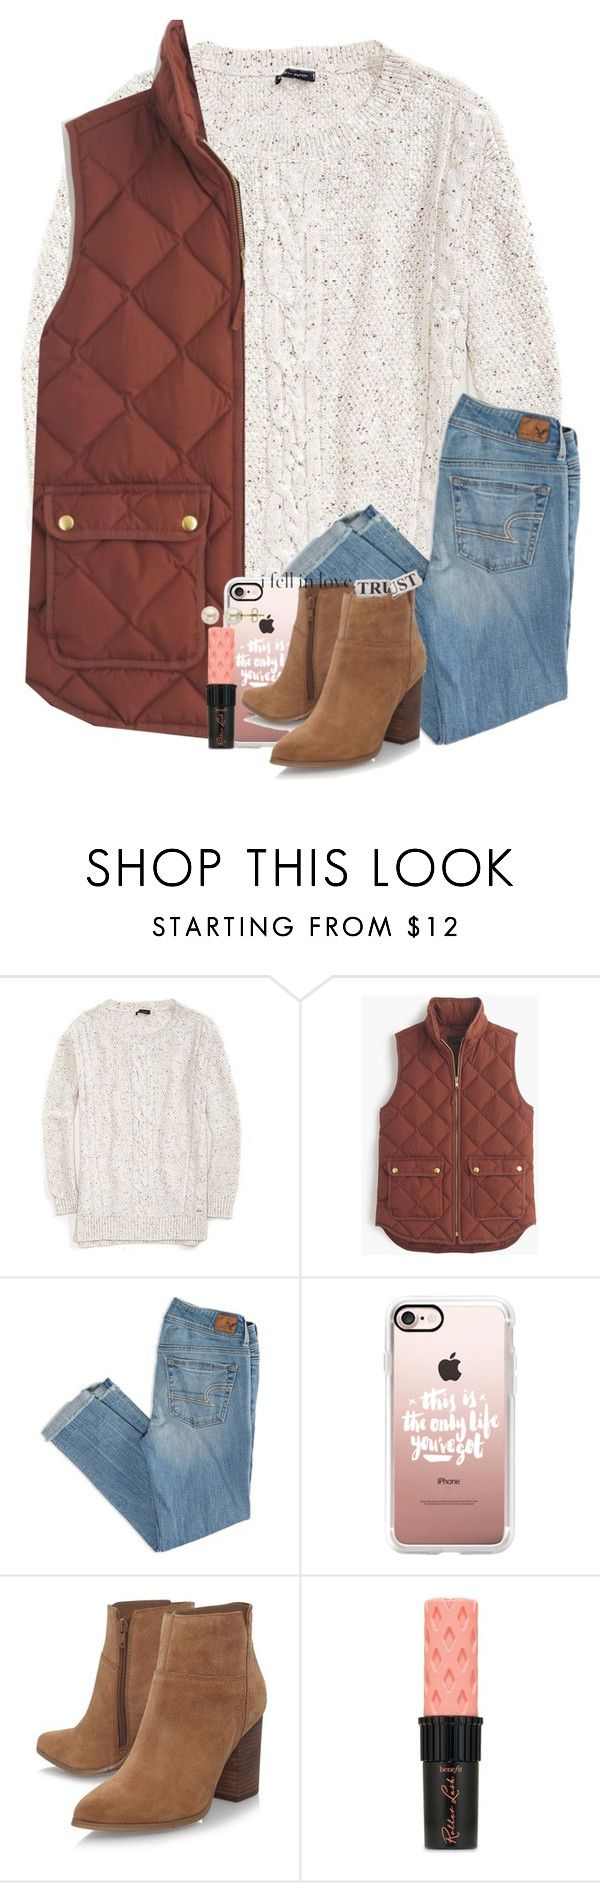 """ask me what's my best side I turn back and point at you"" by legitmaddywill ❤ liked on Polyvore featuring Tommy Hilfiger, J.Crew, American Eagle Outfitters, Casetify, Nine West, Benefit and Lord & Taylor"